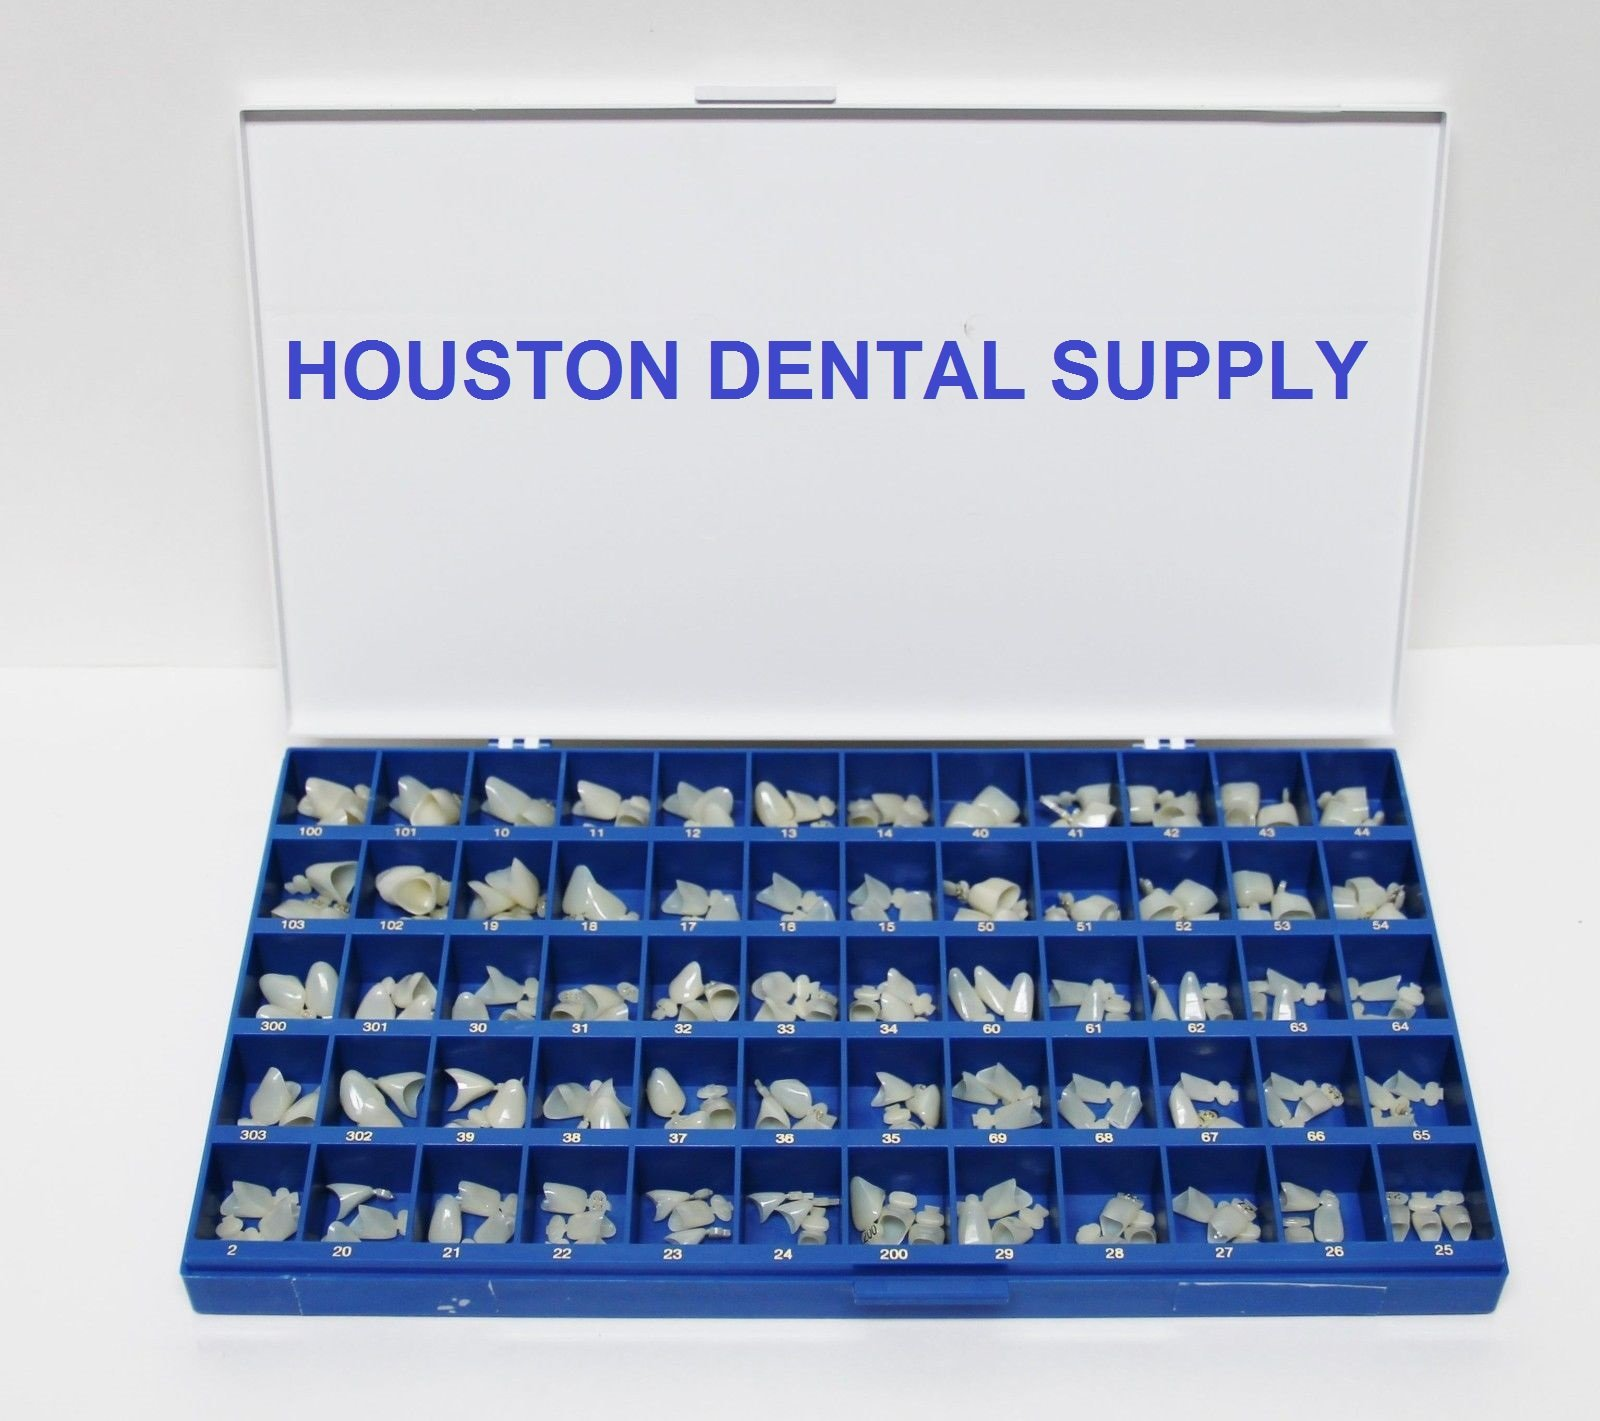 Polycarbonate Temporary Dental Crowns Box Kit 180 Pcs With Paper Guide Chart US SELLER HOUSTON DENTAL SUPPLY